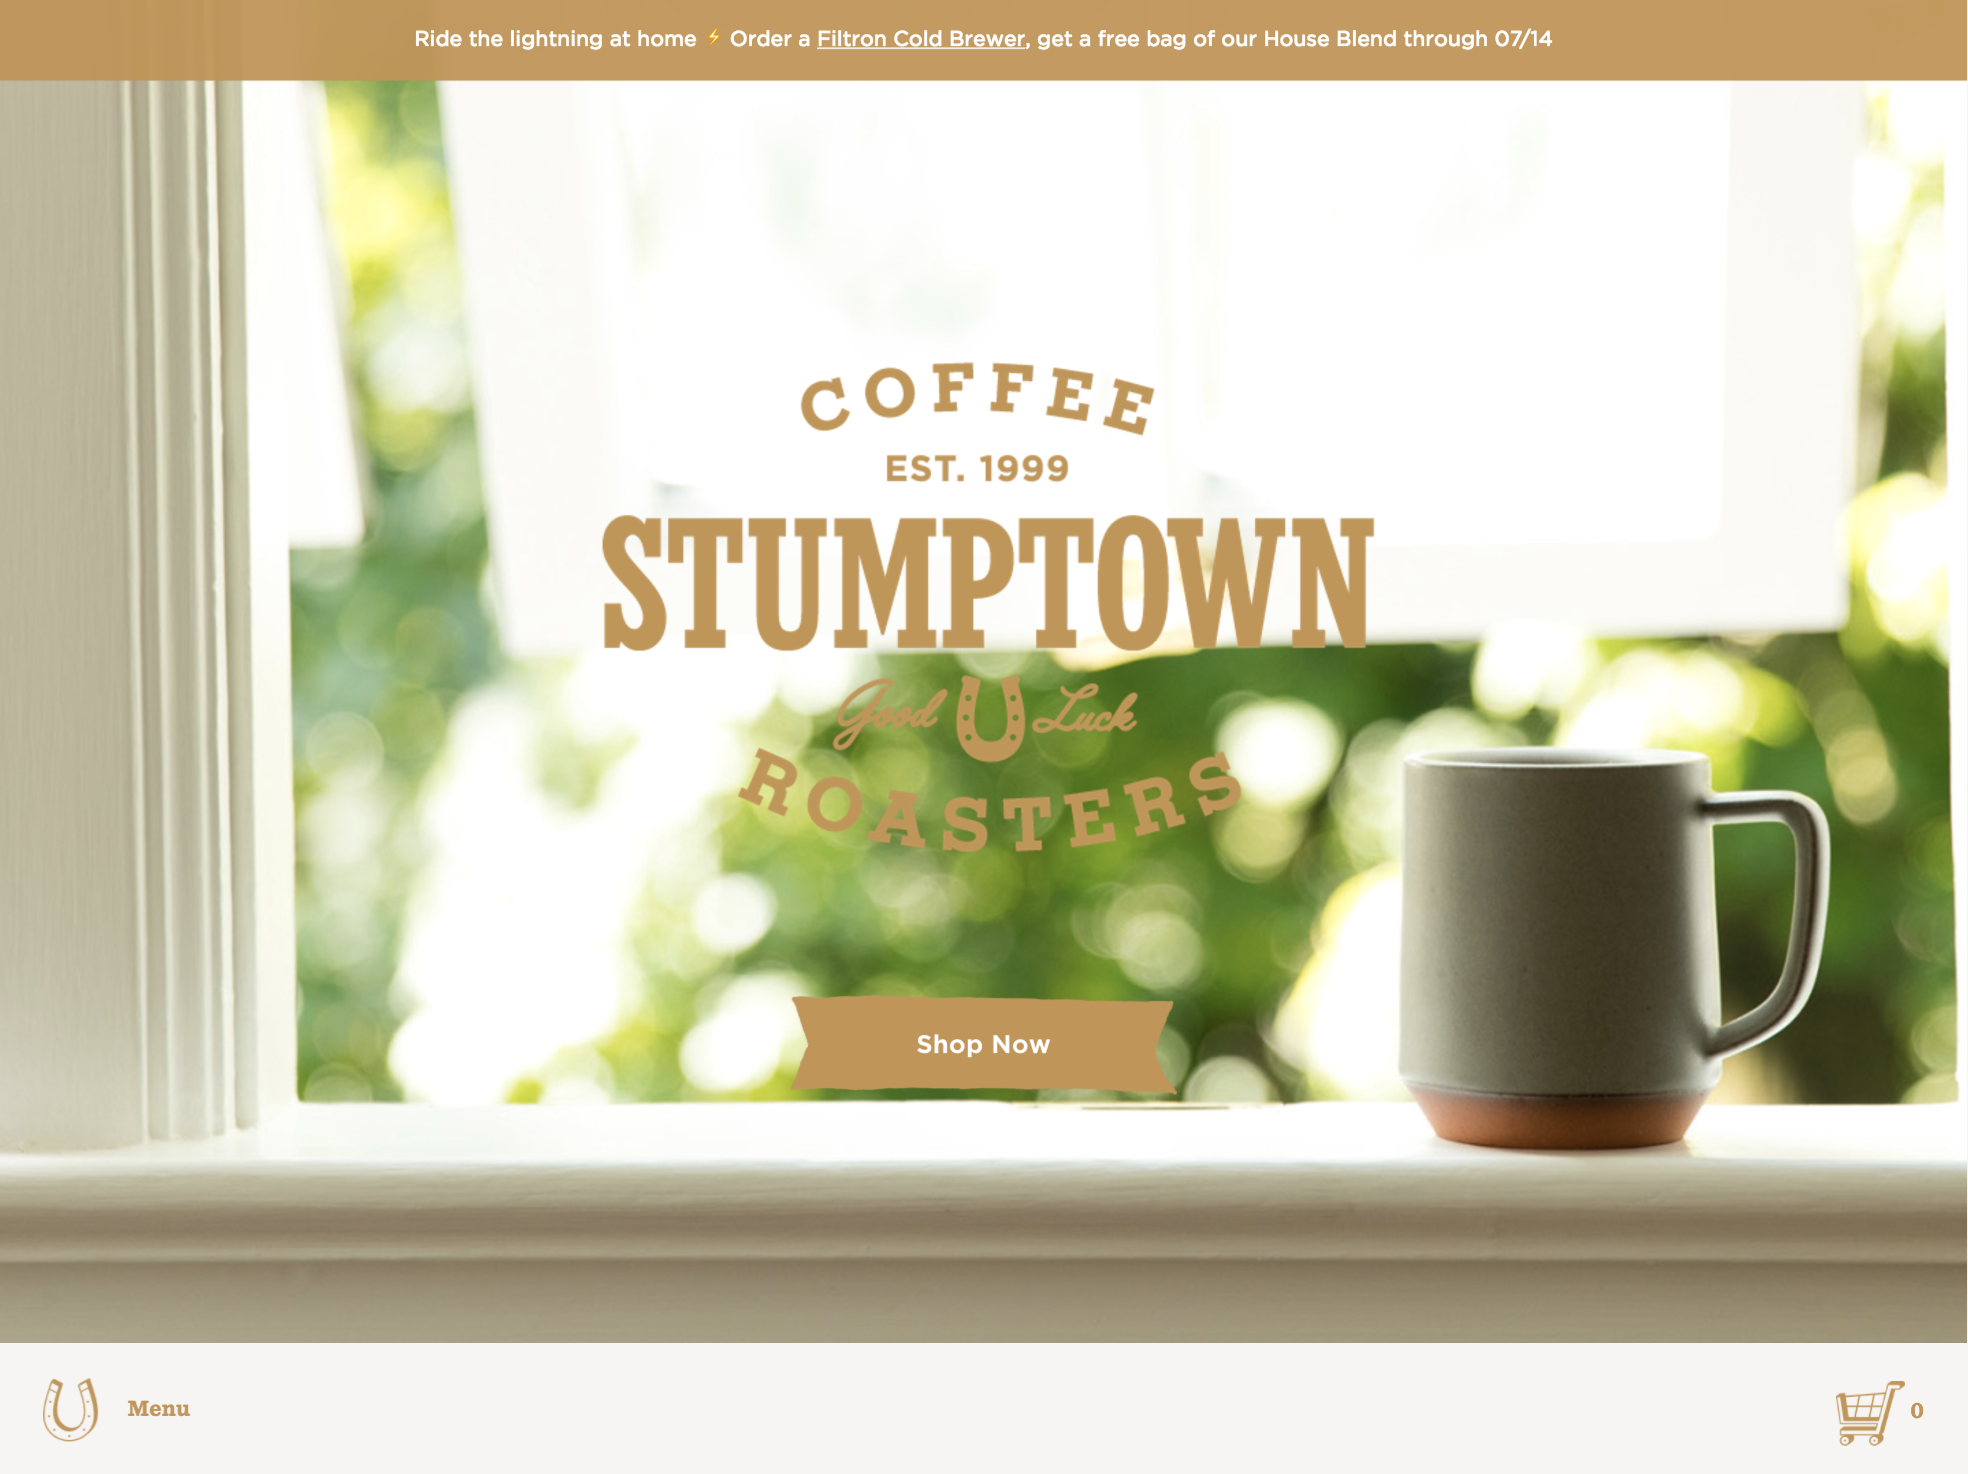 Stumptown Coffee home page